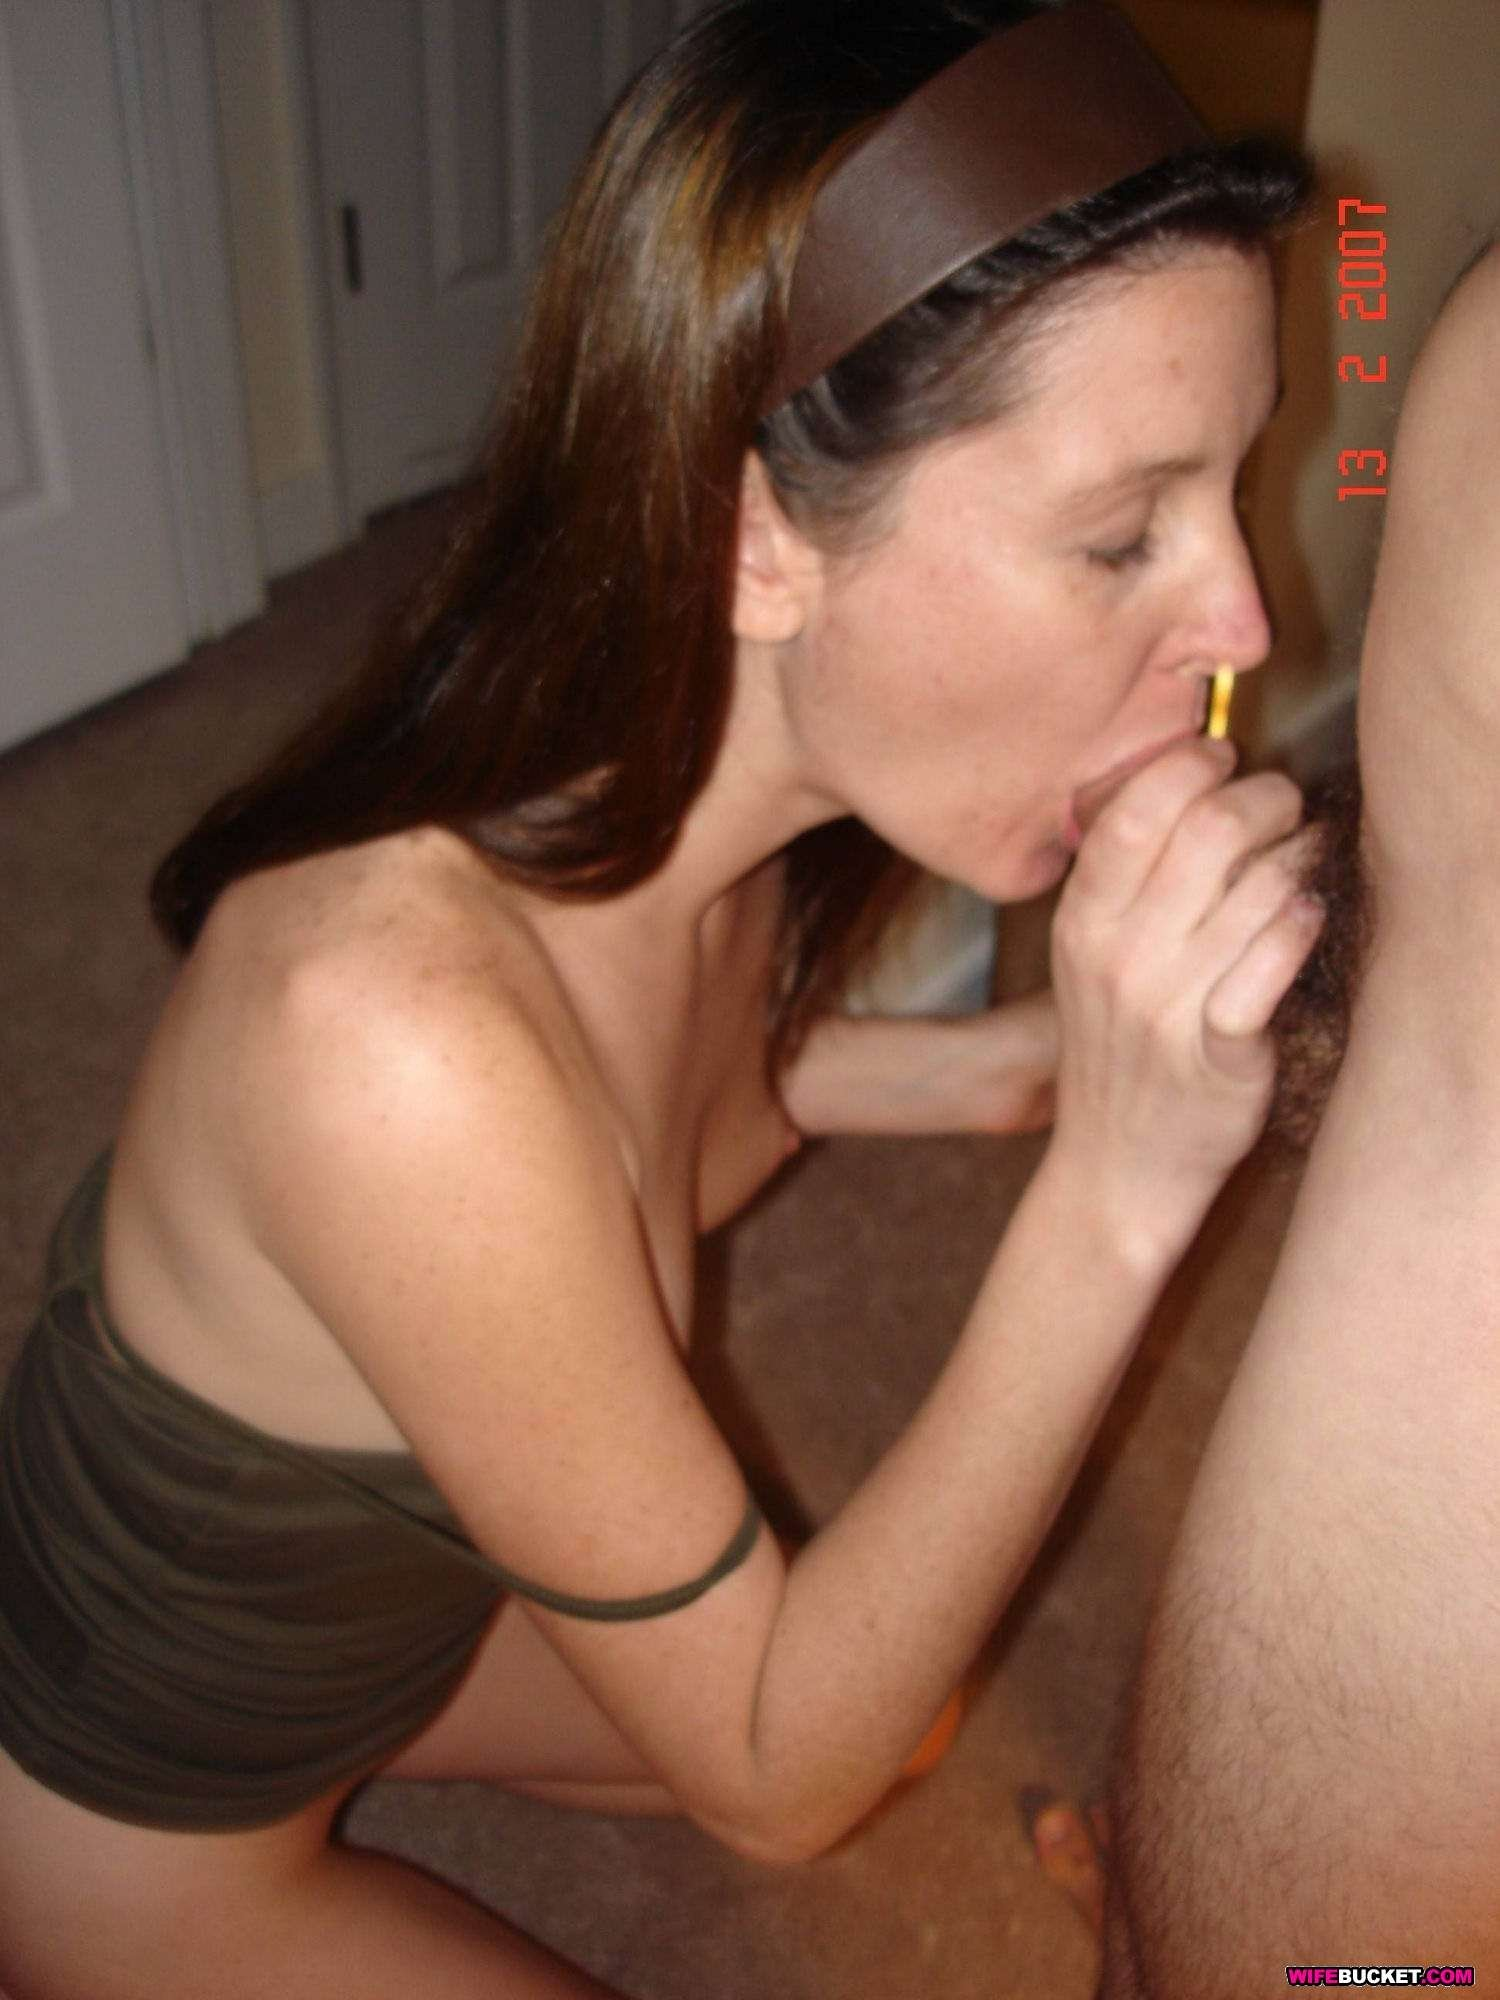 redtube best blow jobs add photo